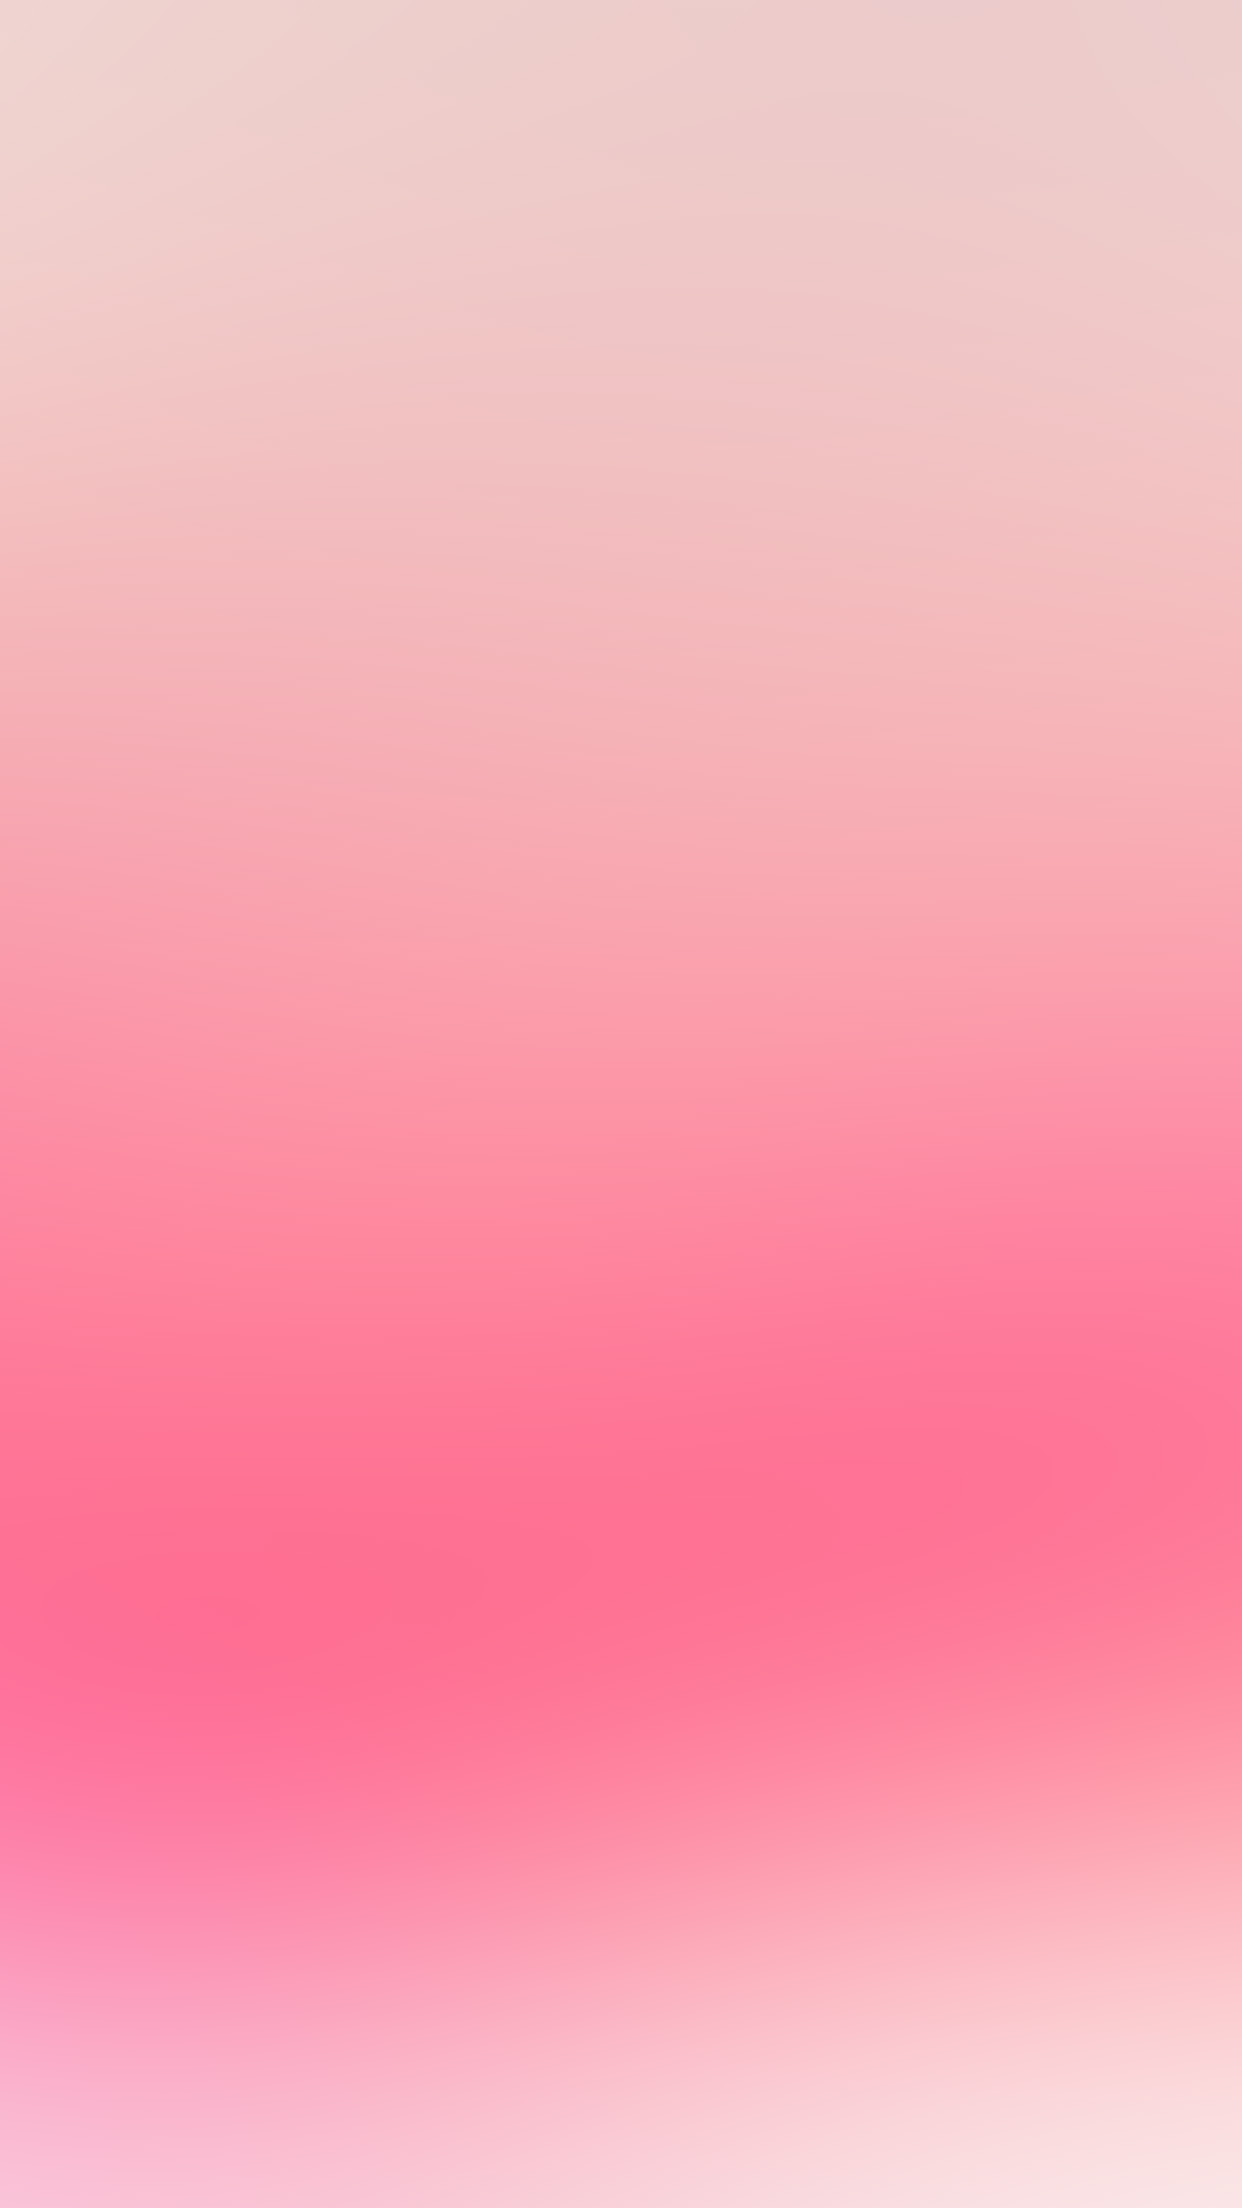 Iphone7papers Sh03 Pink Love Cool Gradation Blur